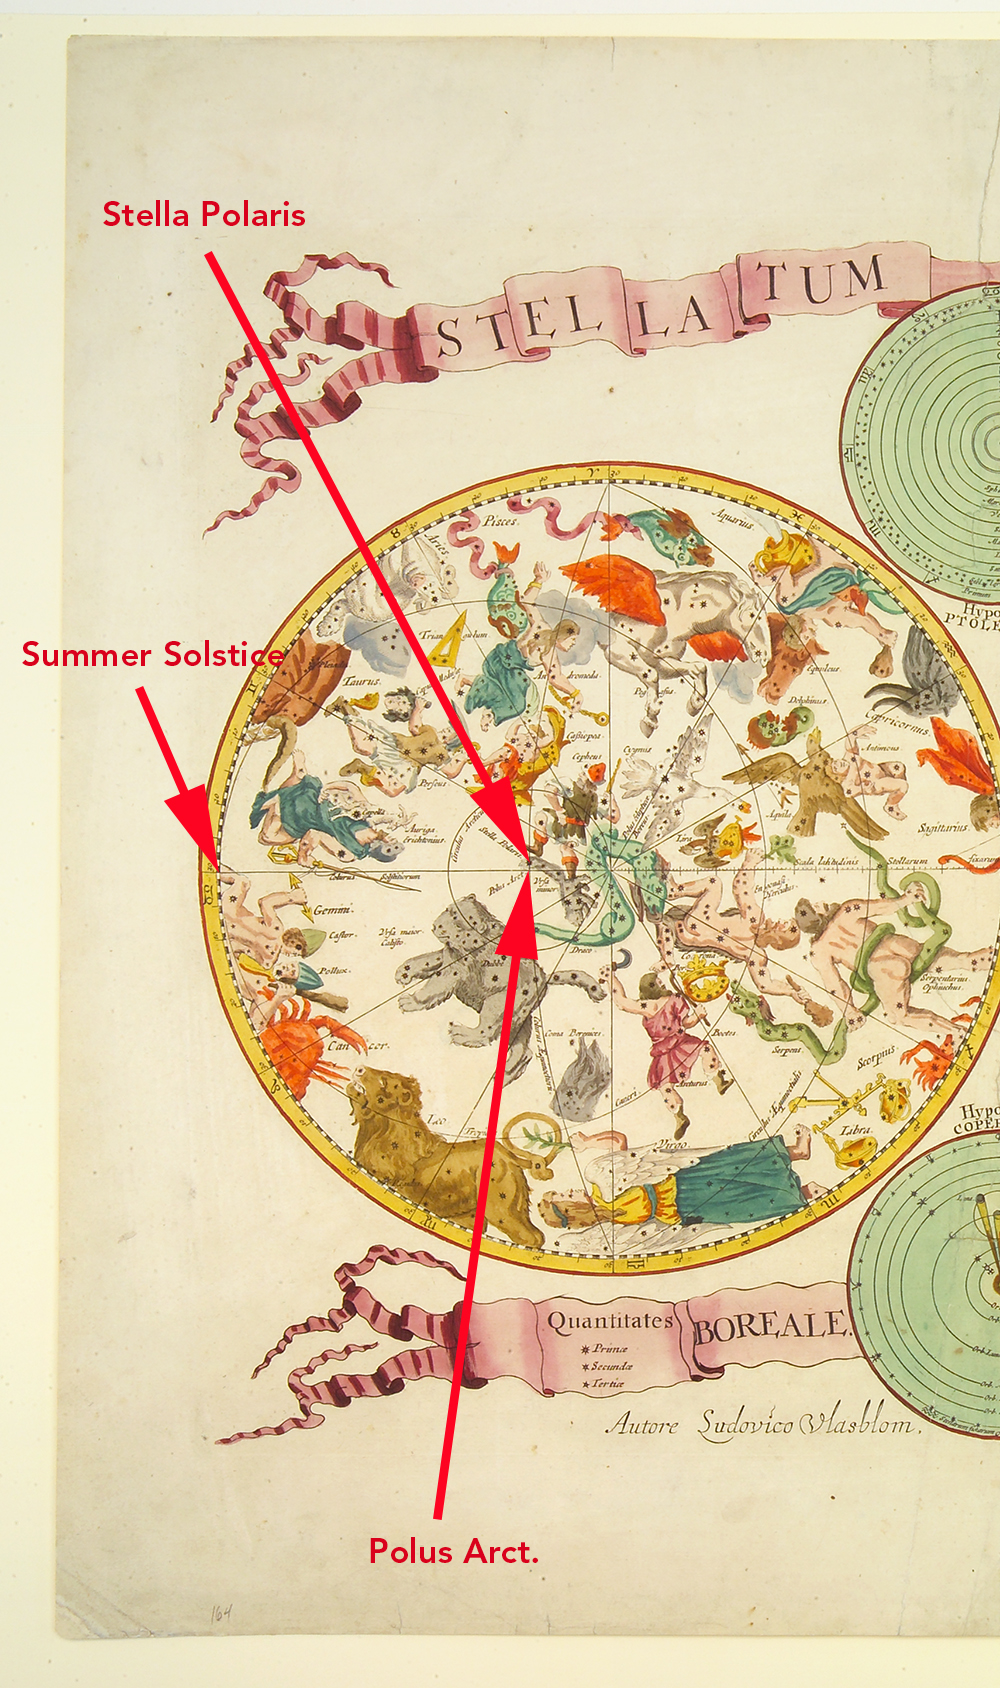 Figure 2: On a celestial chart, the summer solstice is the place in the ecliptic circle (around the circumference of this chart) that is closest to the celestial north pole, near the tip of the Little Bear's tail.